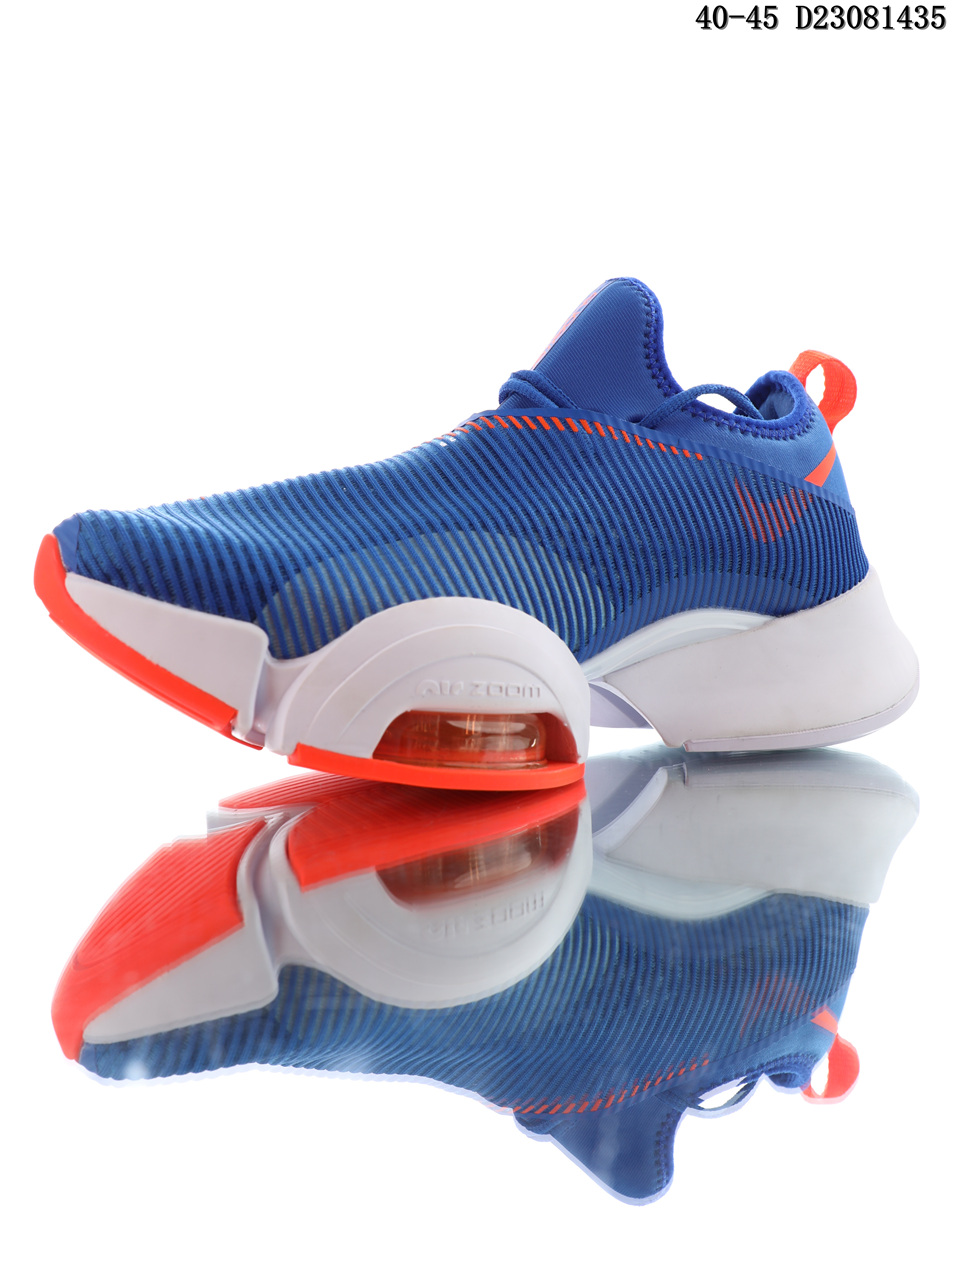 Nike Air Zoom Superrep Blue Red Running Shoes side